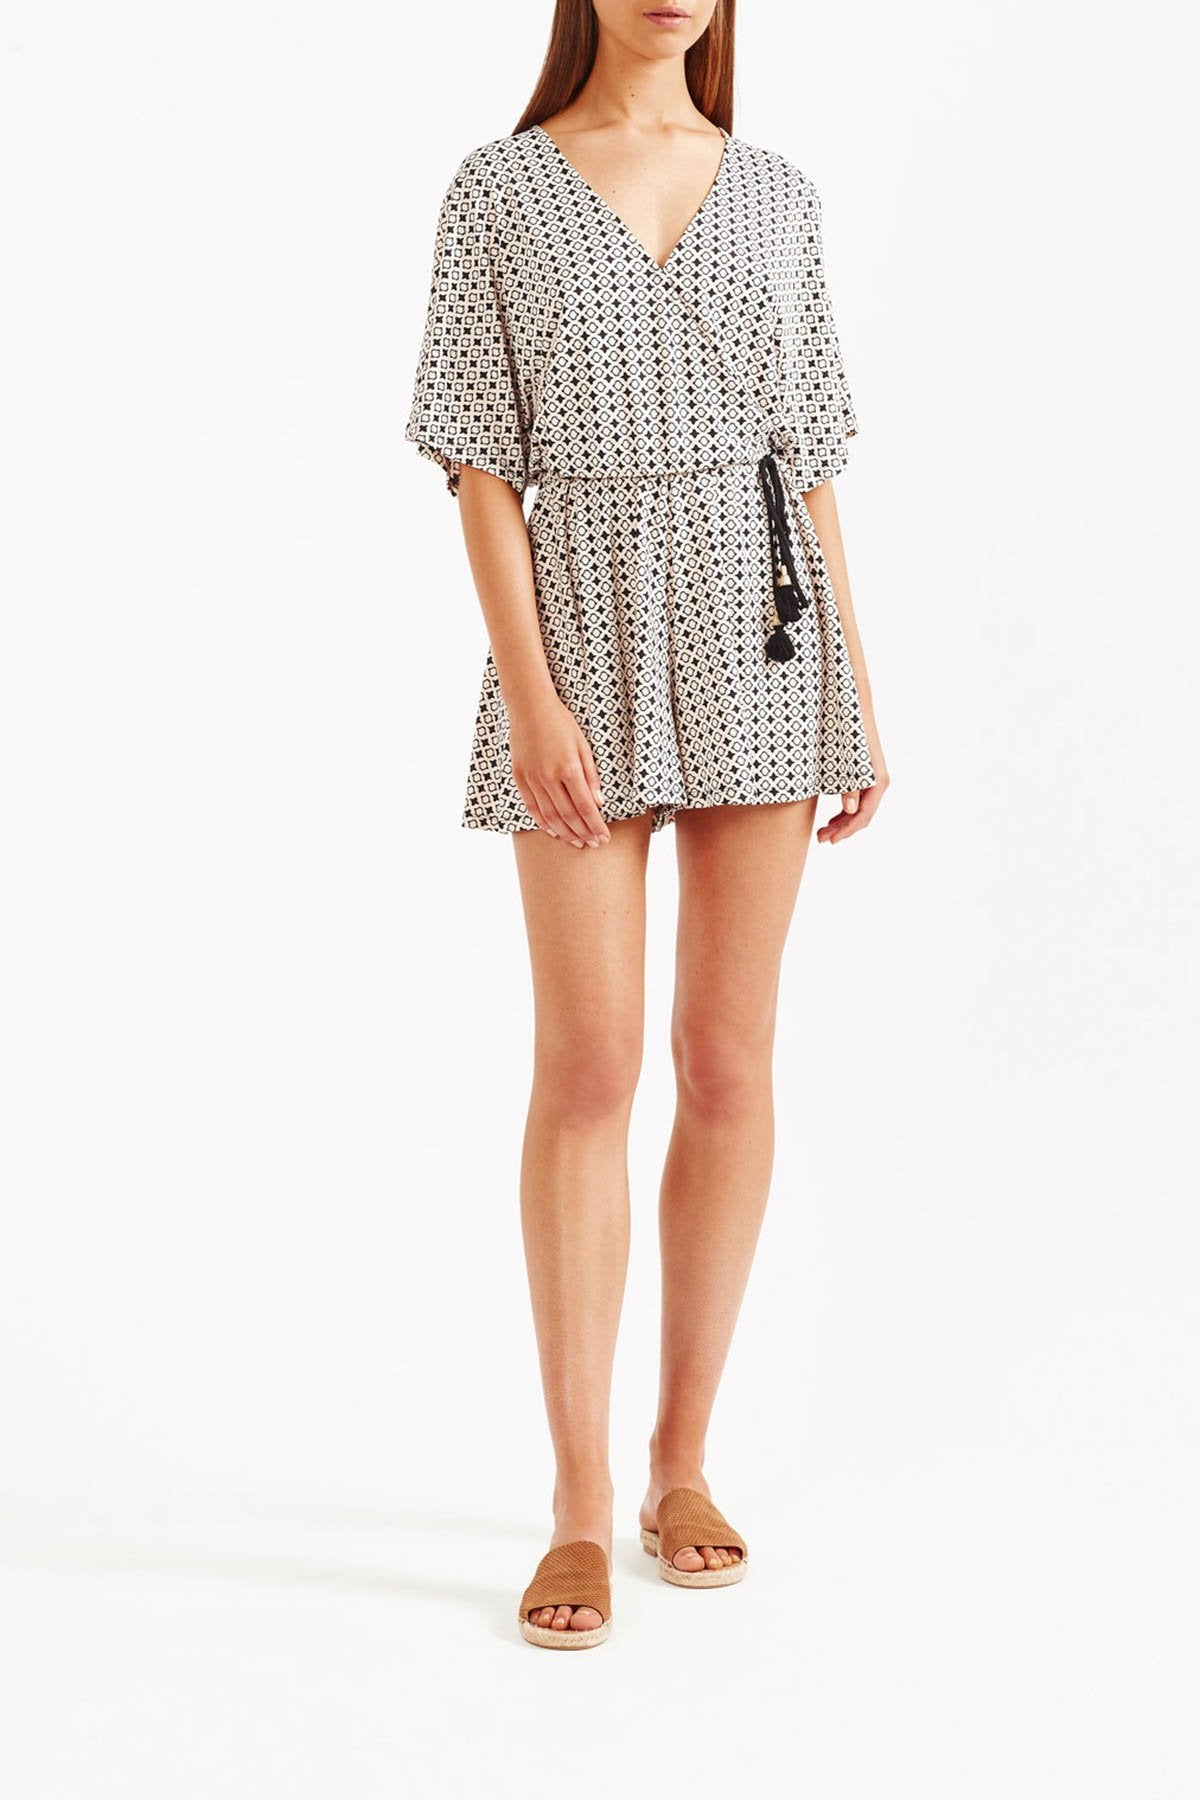 Tigerlily Karezi Playsuit - Bone